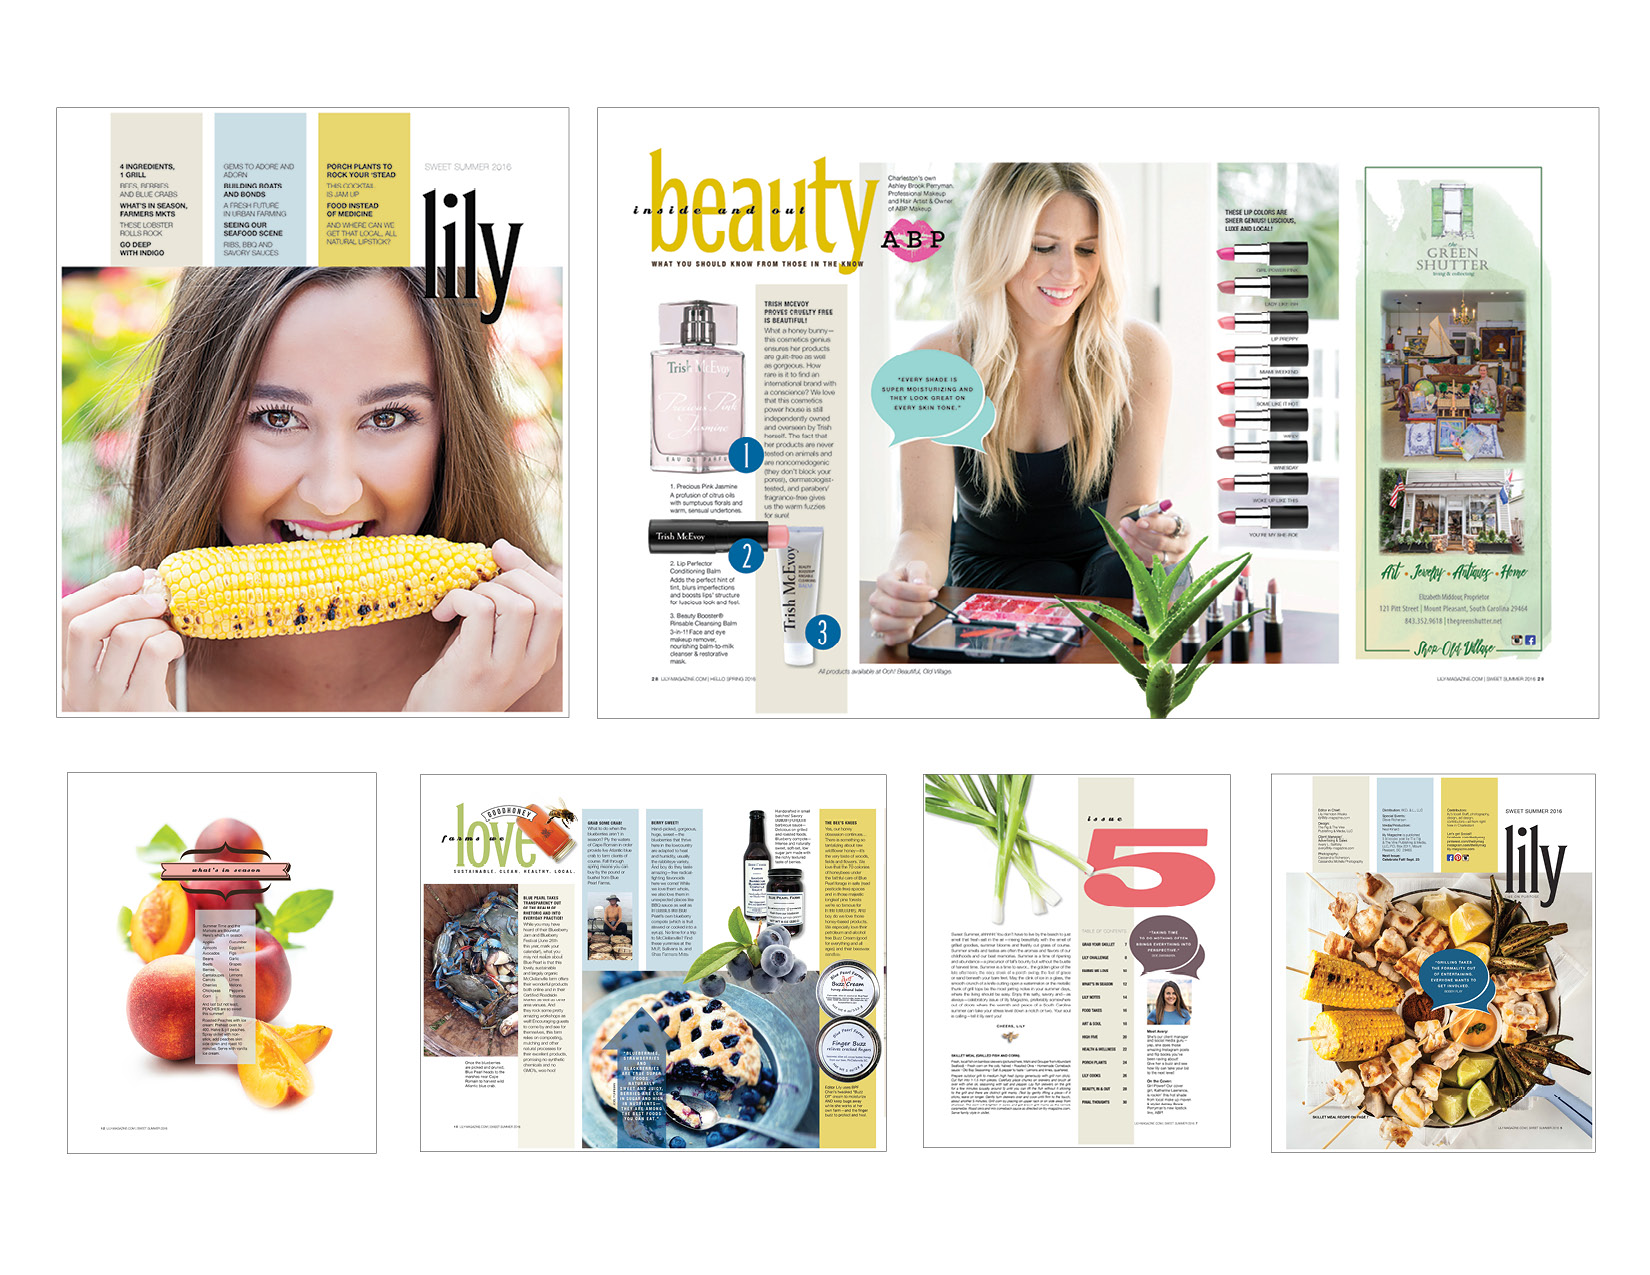 Lily Magazine was a lifestyle magazine in Charleston, SC designed by Caitilin McPhillips.